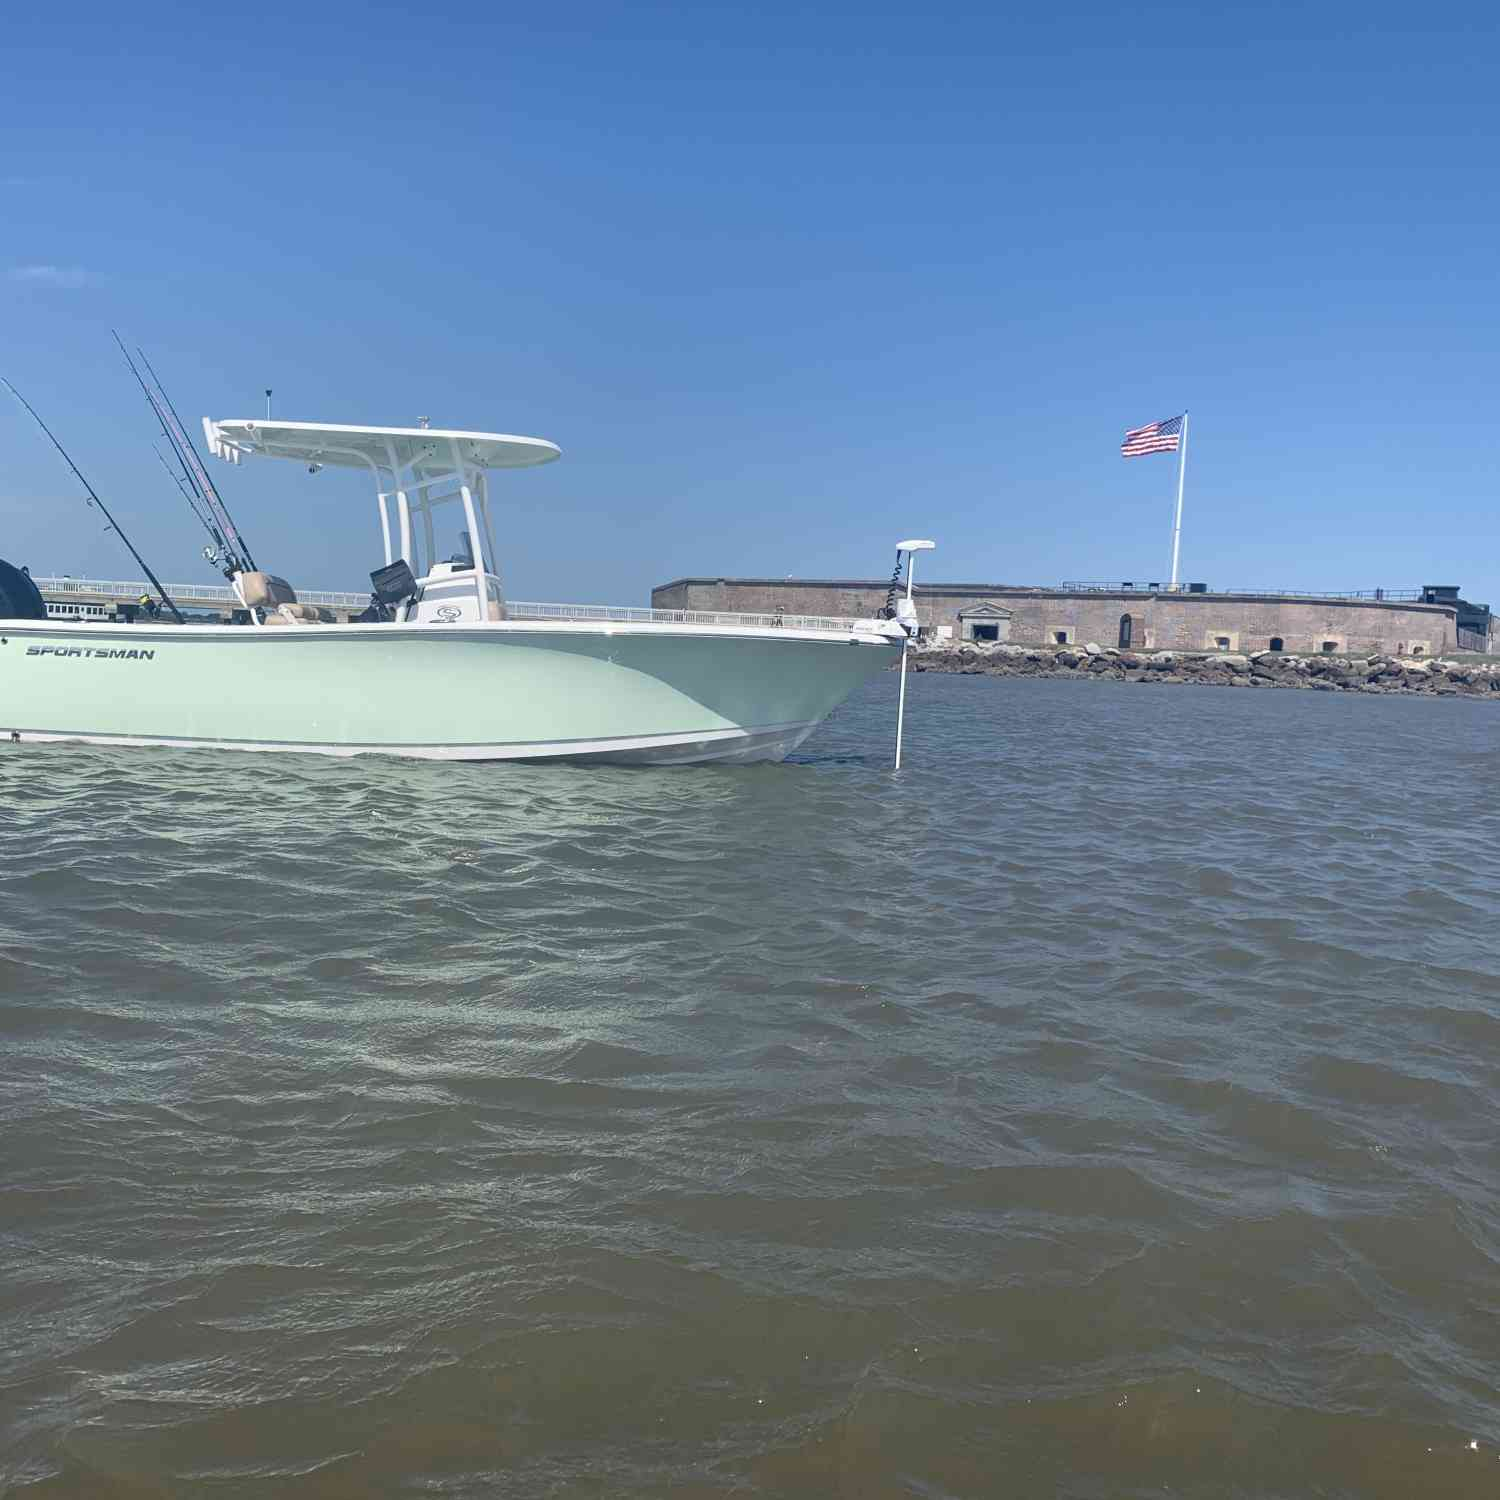 Title: Ft. Sumter - On board their Sportsman Heritage 231 Center Console - Location: Charleston,SC. Participating in the Photo Contest #SportsmanJuly2019